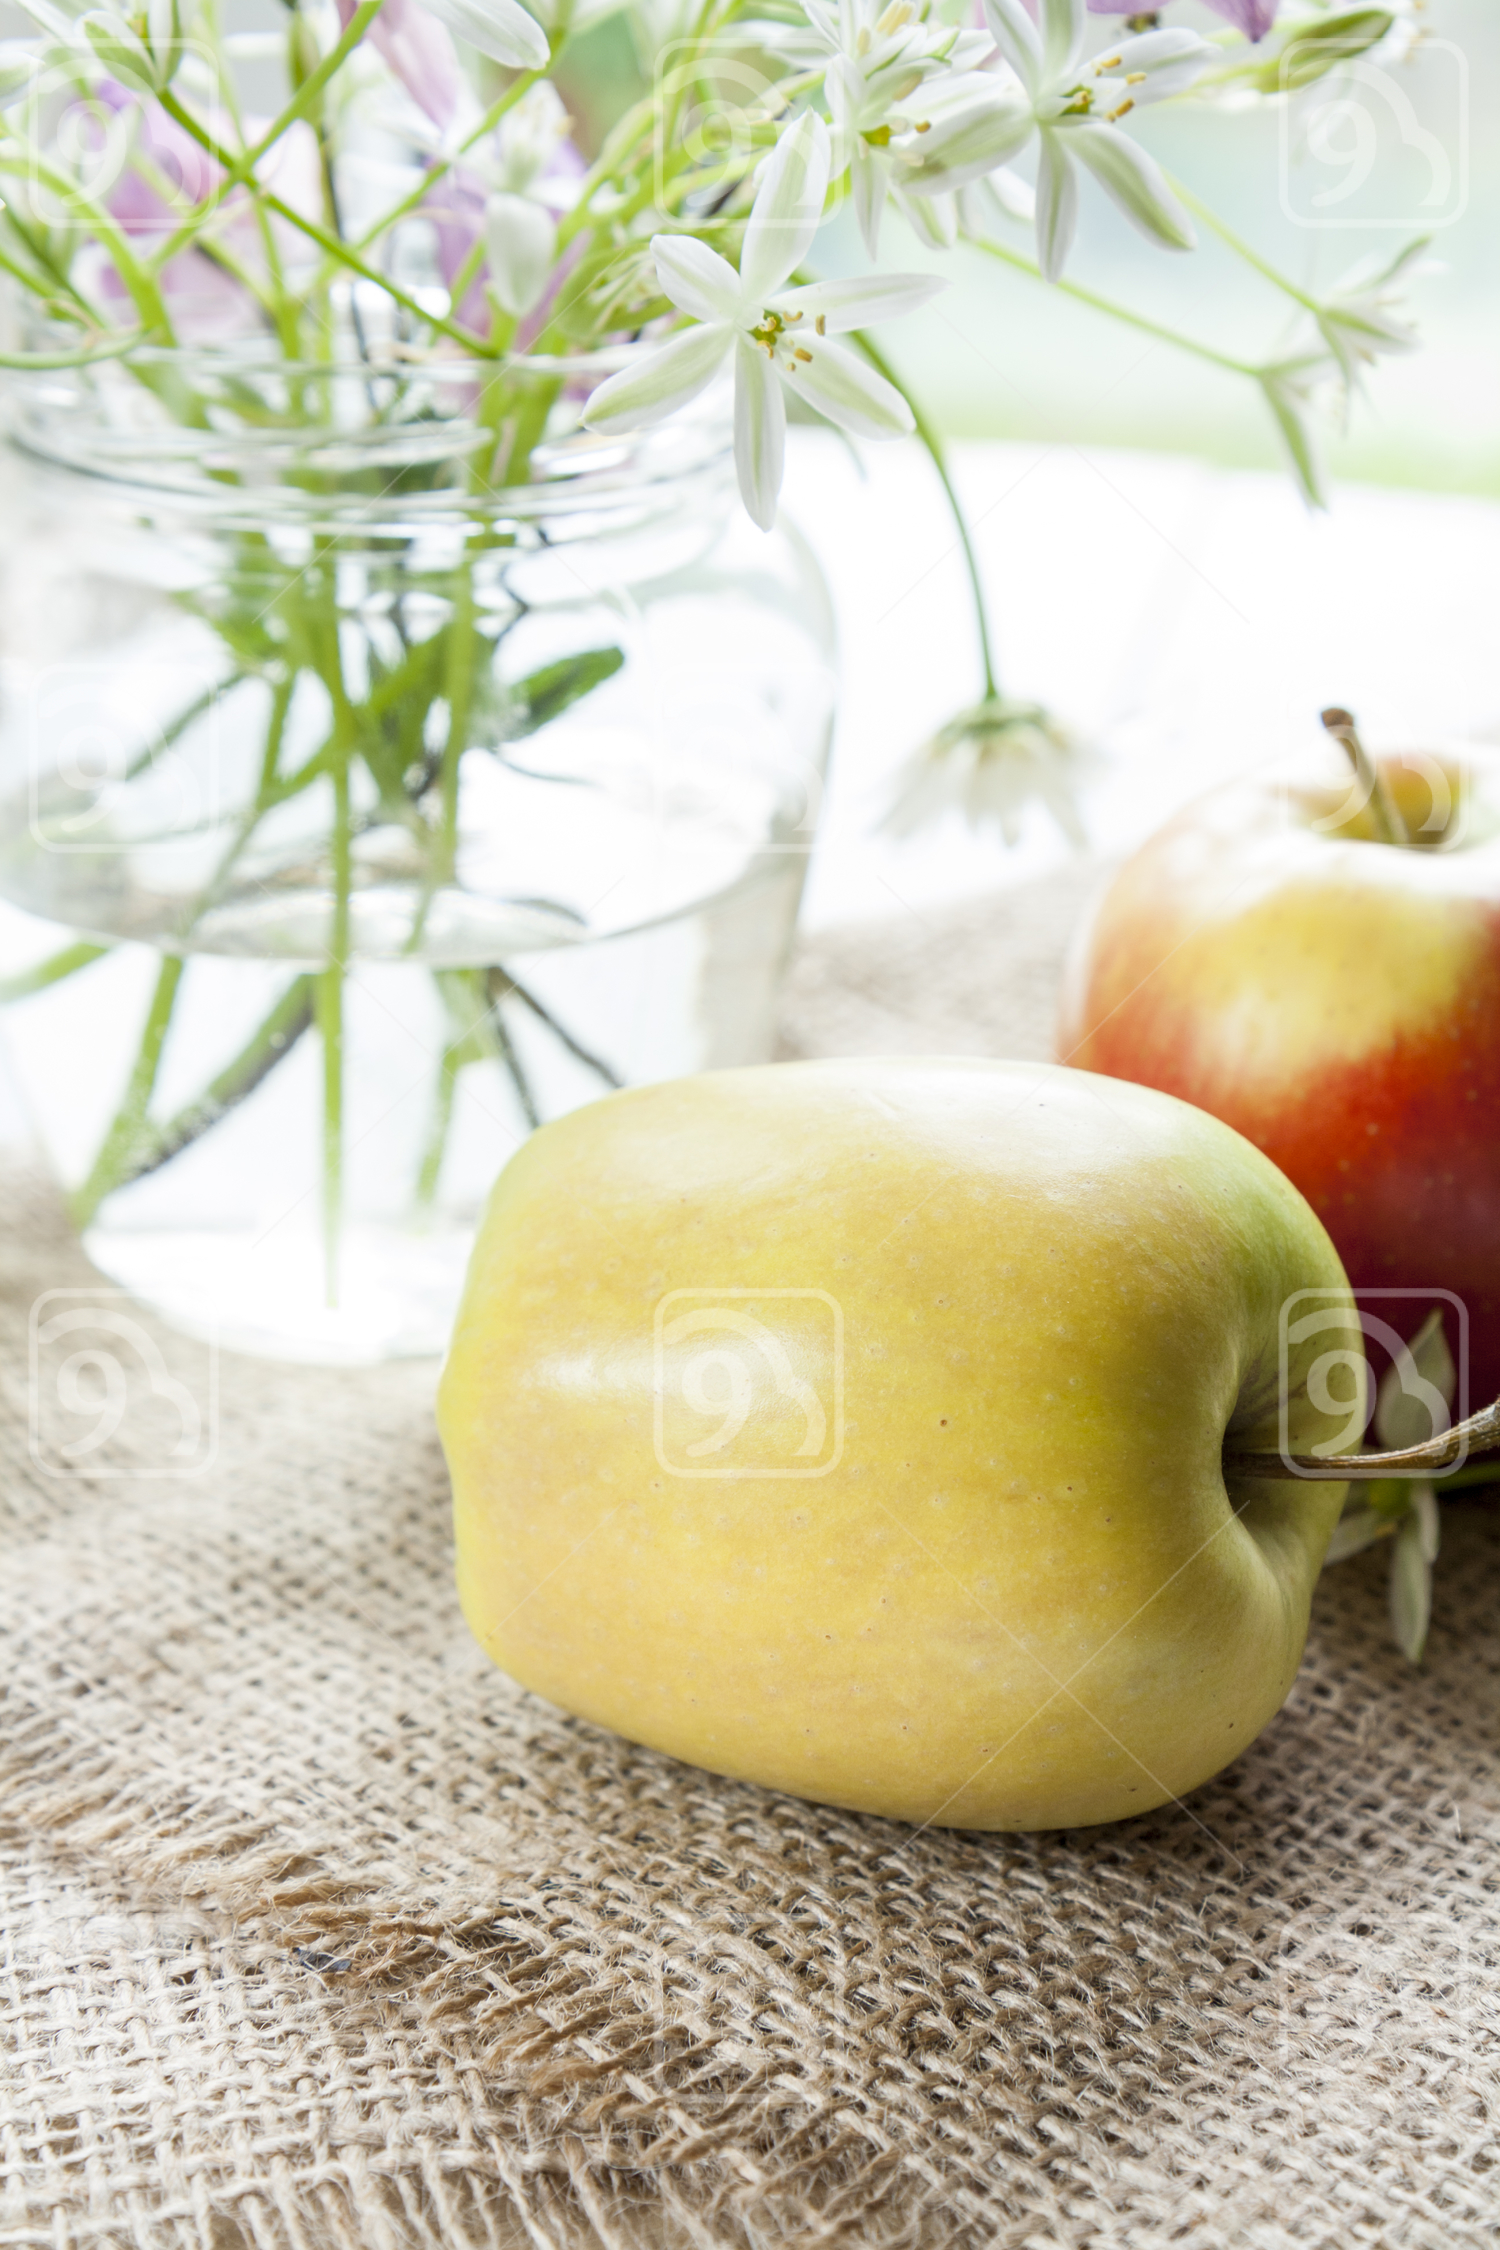 Apples and white flowers on table